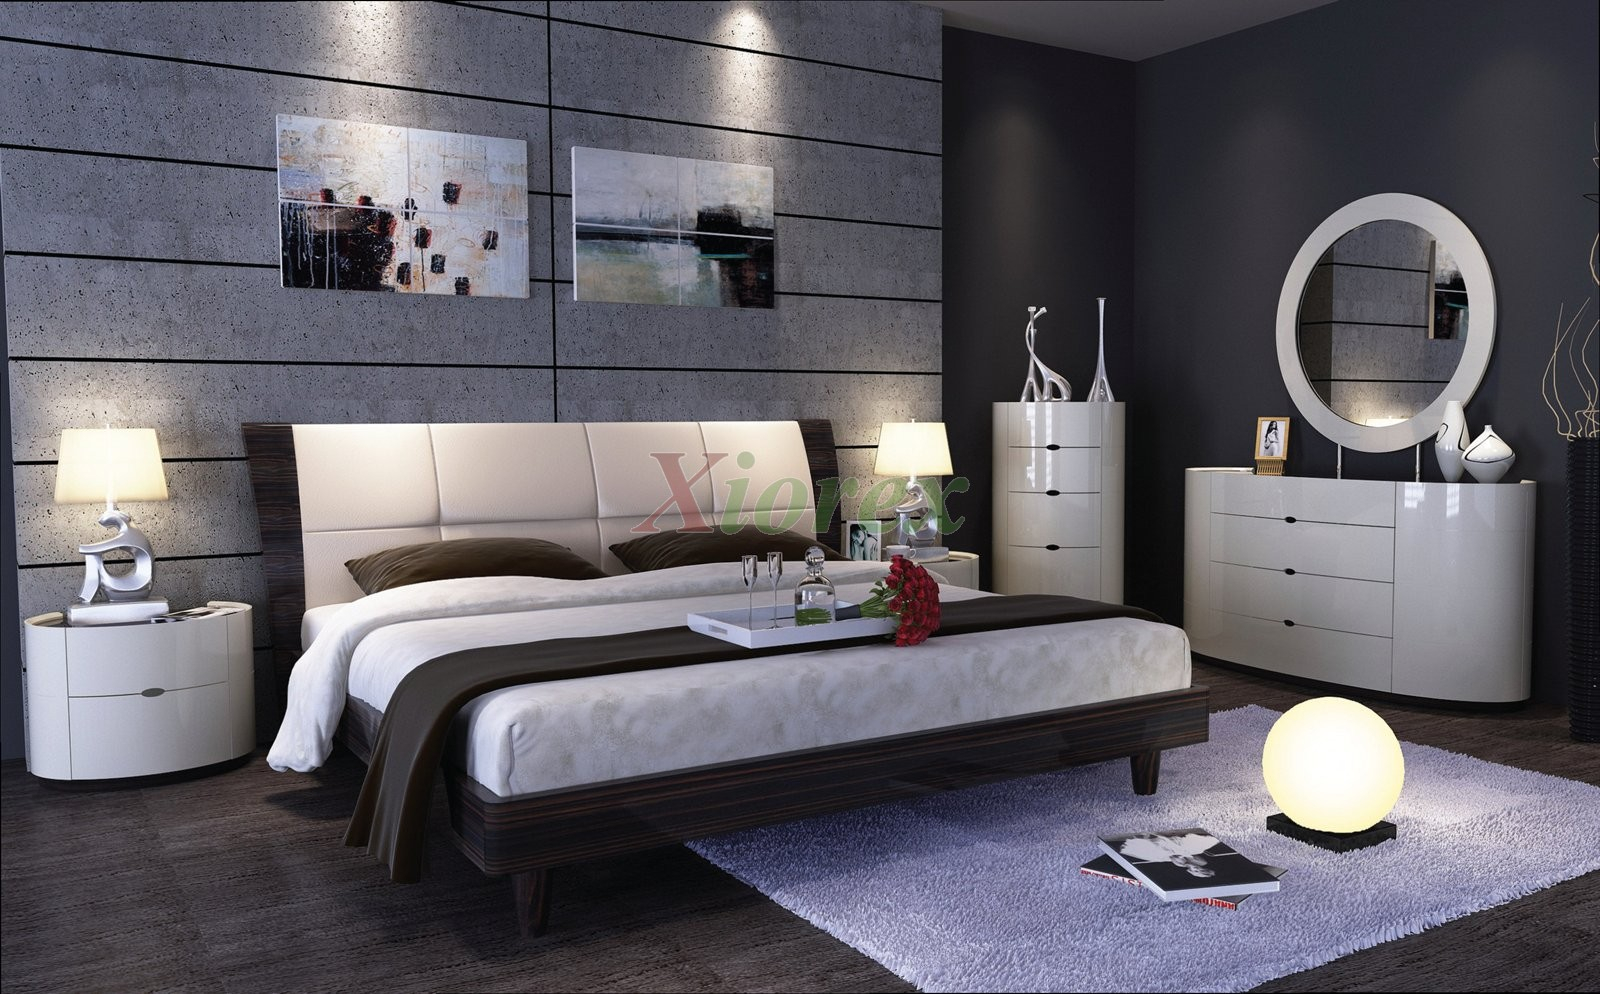 Hydra Modern Bed Sets Toronto Ottawa Calgary Vancouver Bc intended for 15 Smart Concepts of How to Craft Modern Bedroom Collection